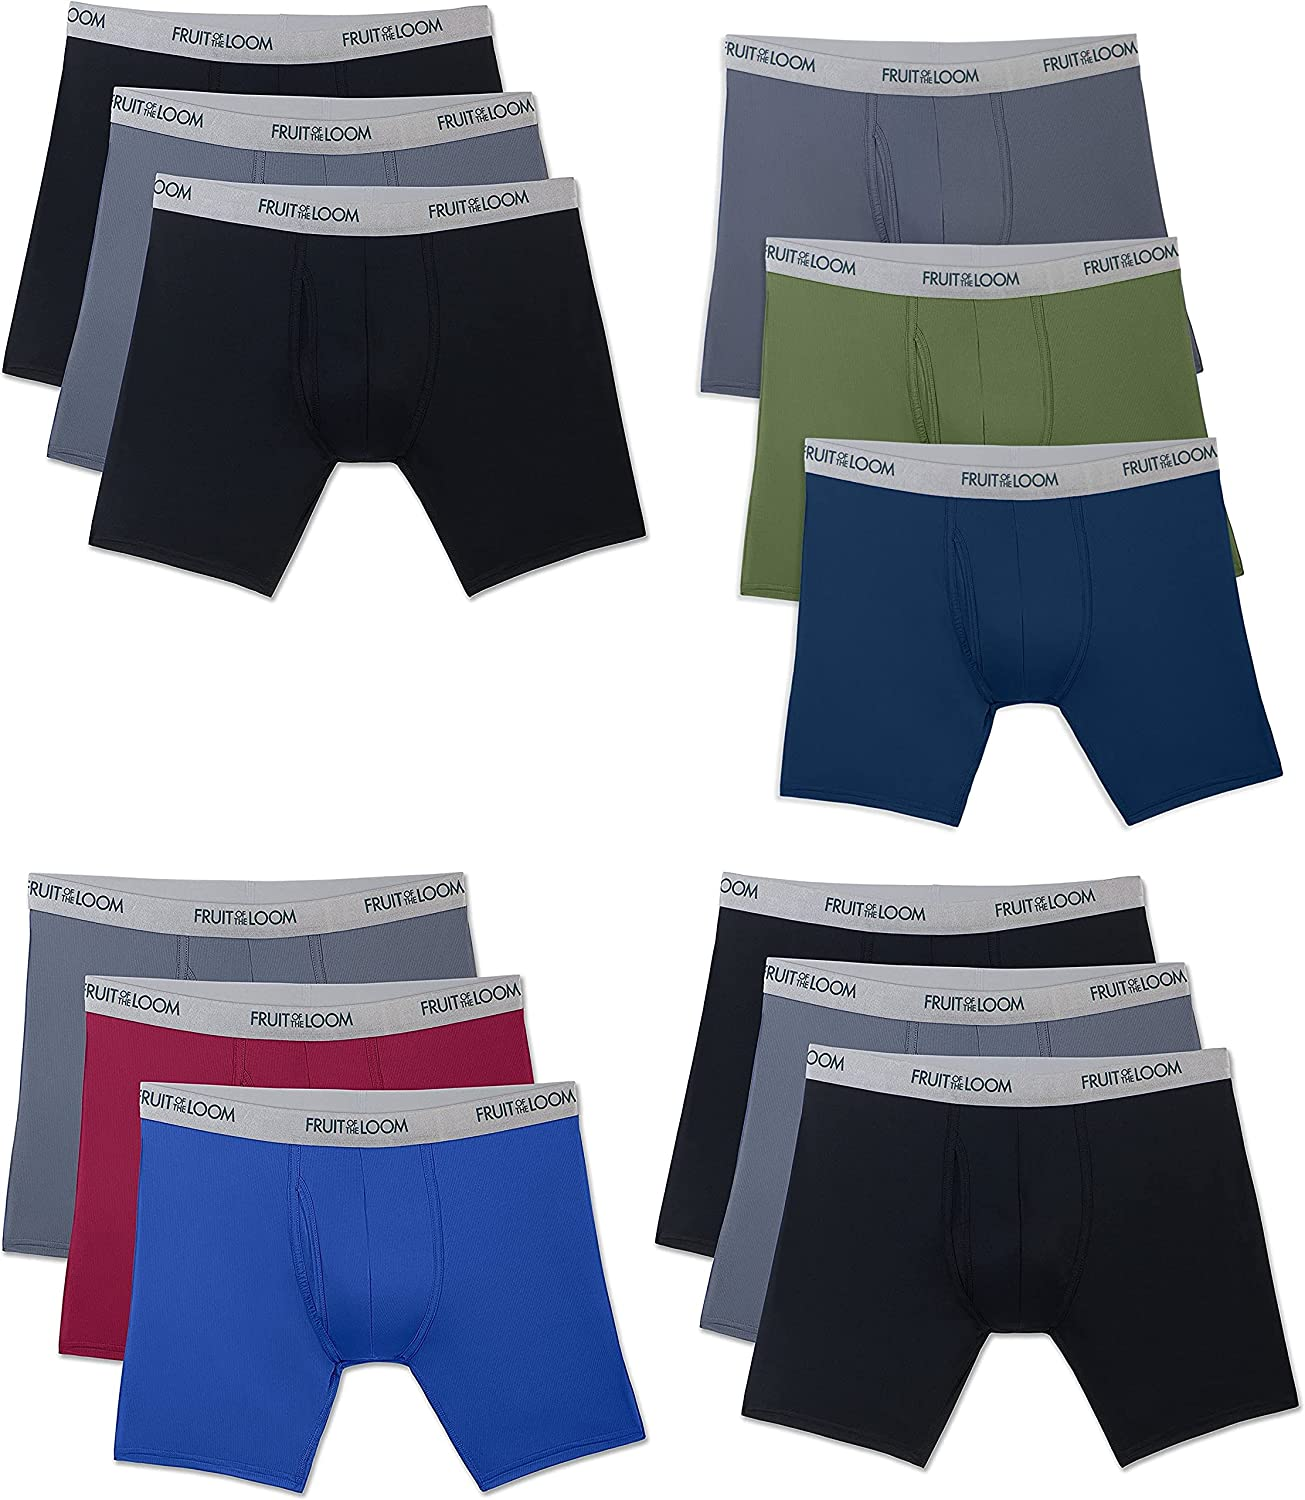 Fruit of the Loom Men's 12-Pack Everlight Boxer Briefs Breathable COLORS VARY